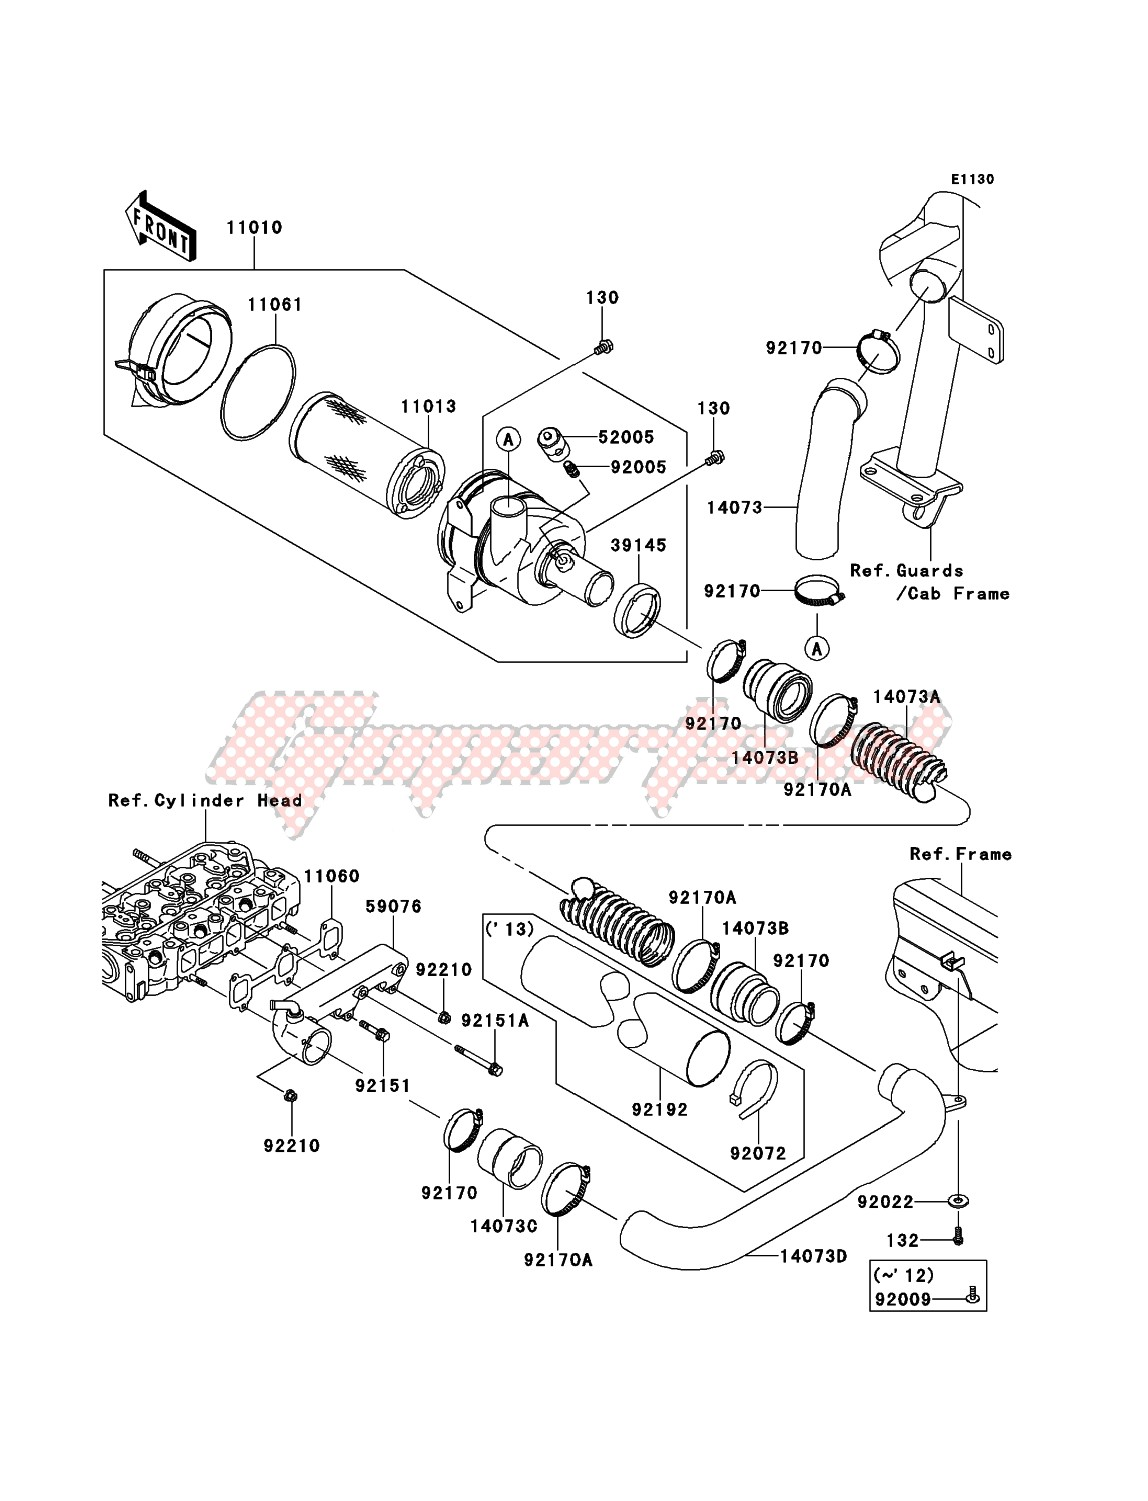 Engine-Air Cleaner